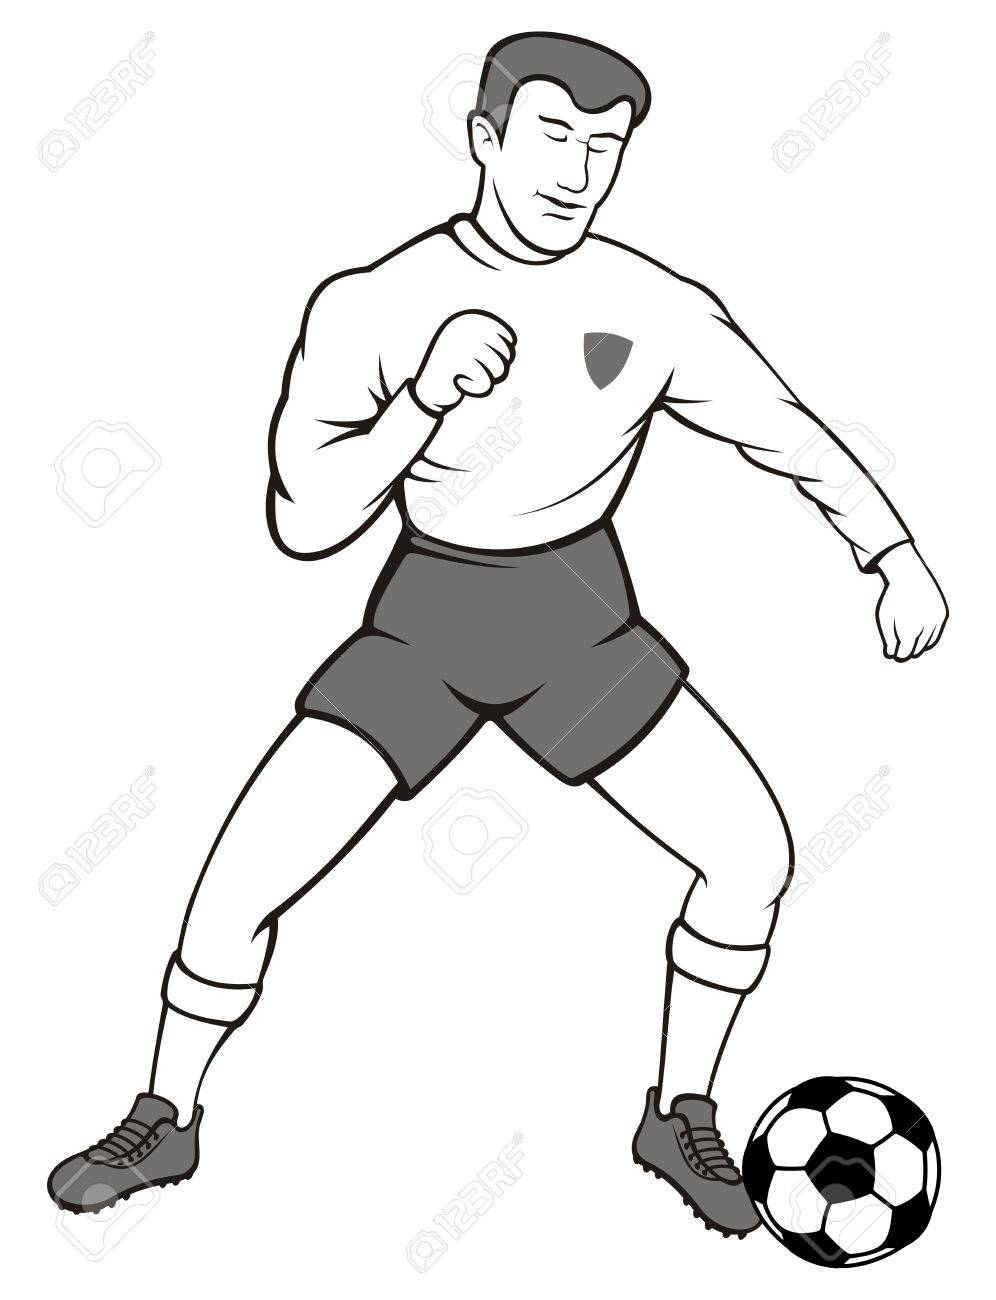 Illustration of a soccer player with a ball on white background. - 9851160